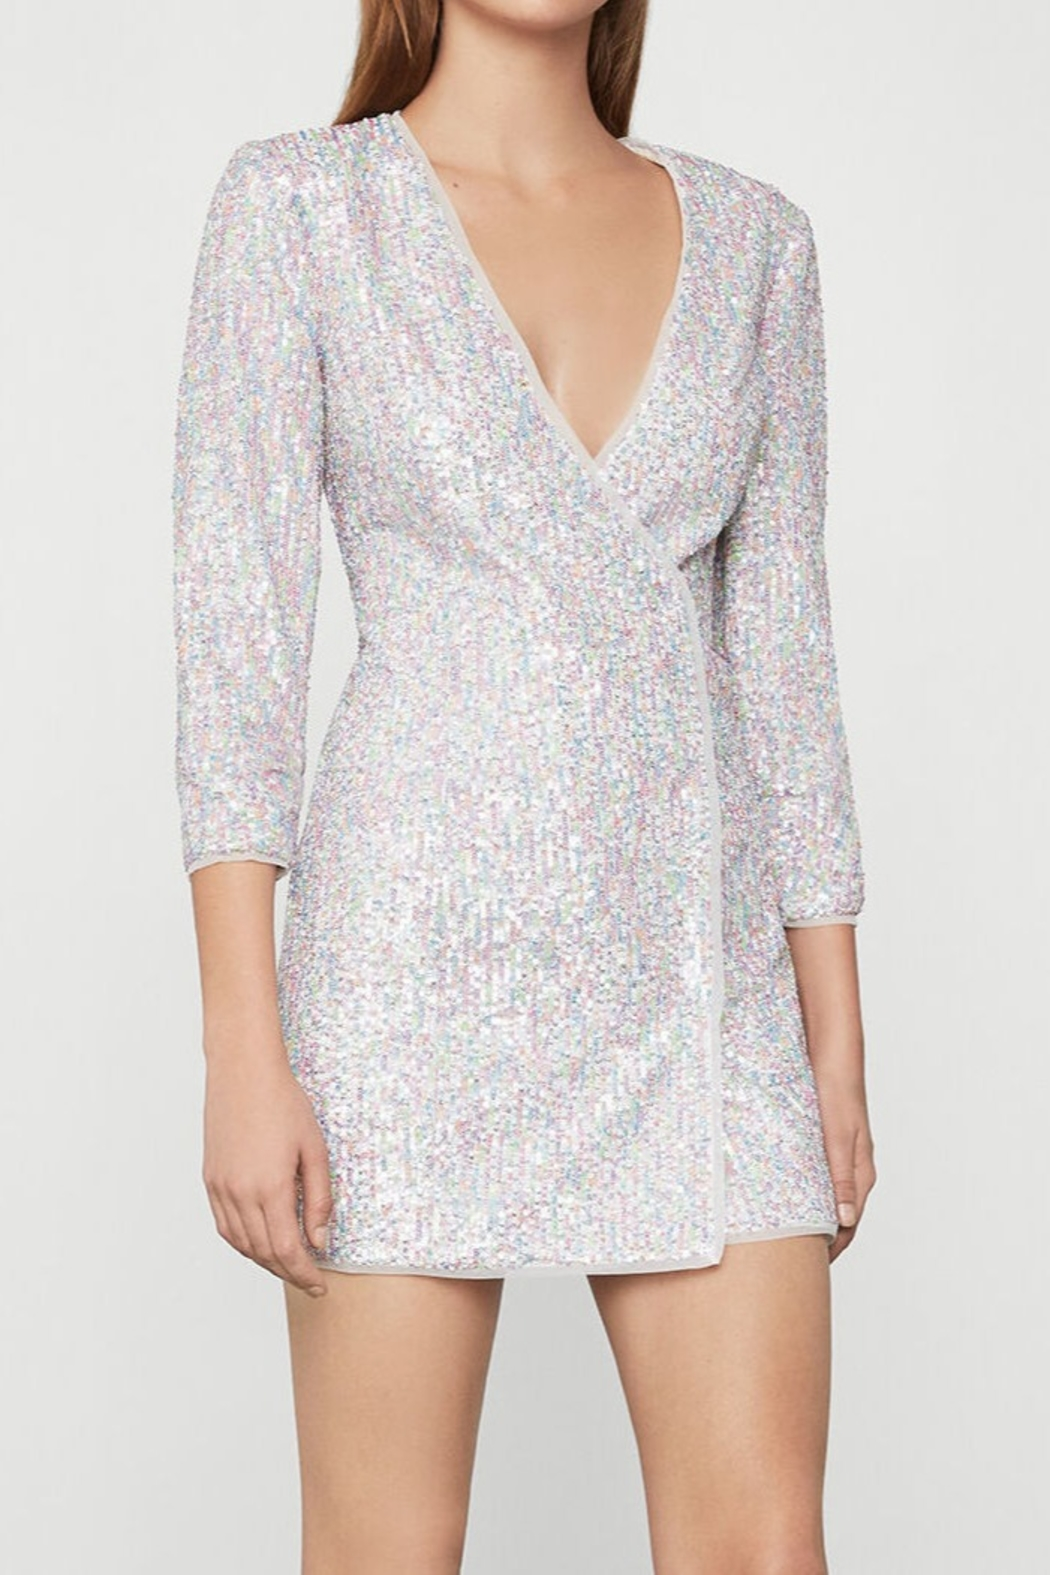 BCBG MAXAZRIA Sequin Wrap Dress - Front Cropped Image